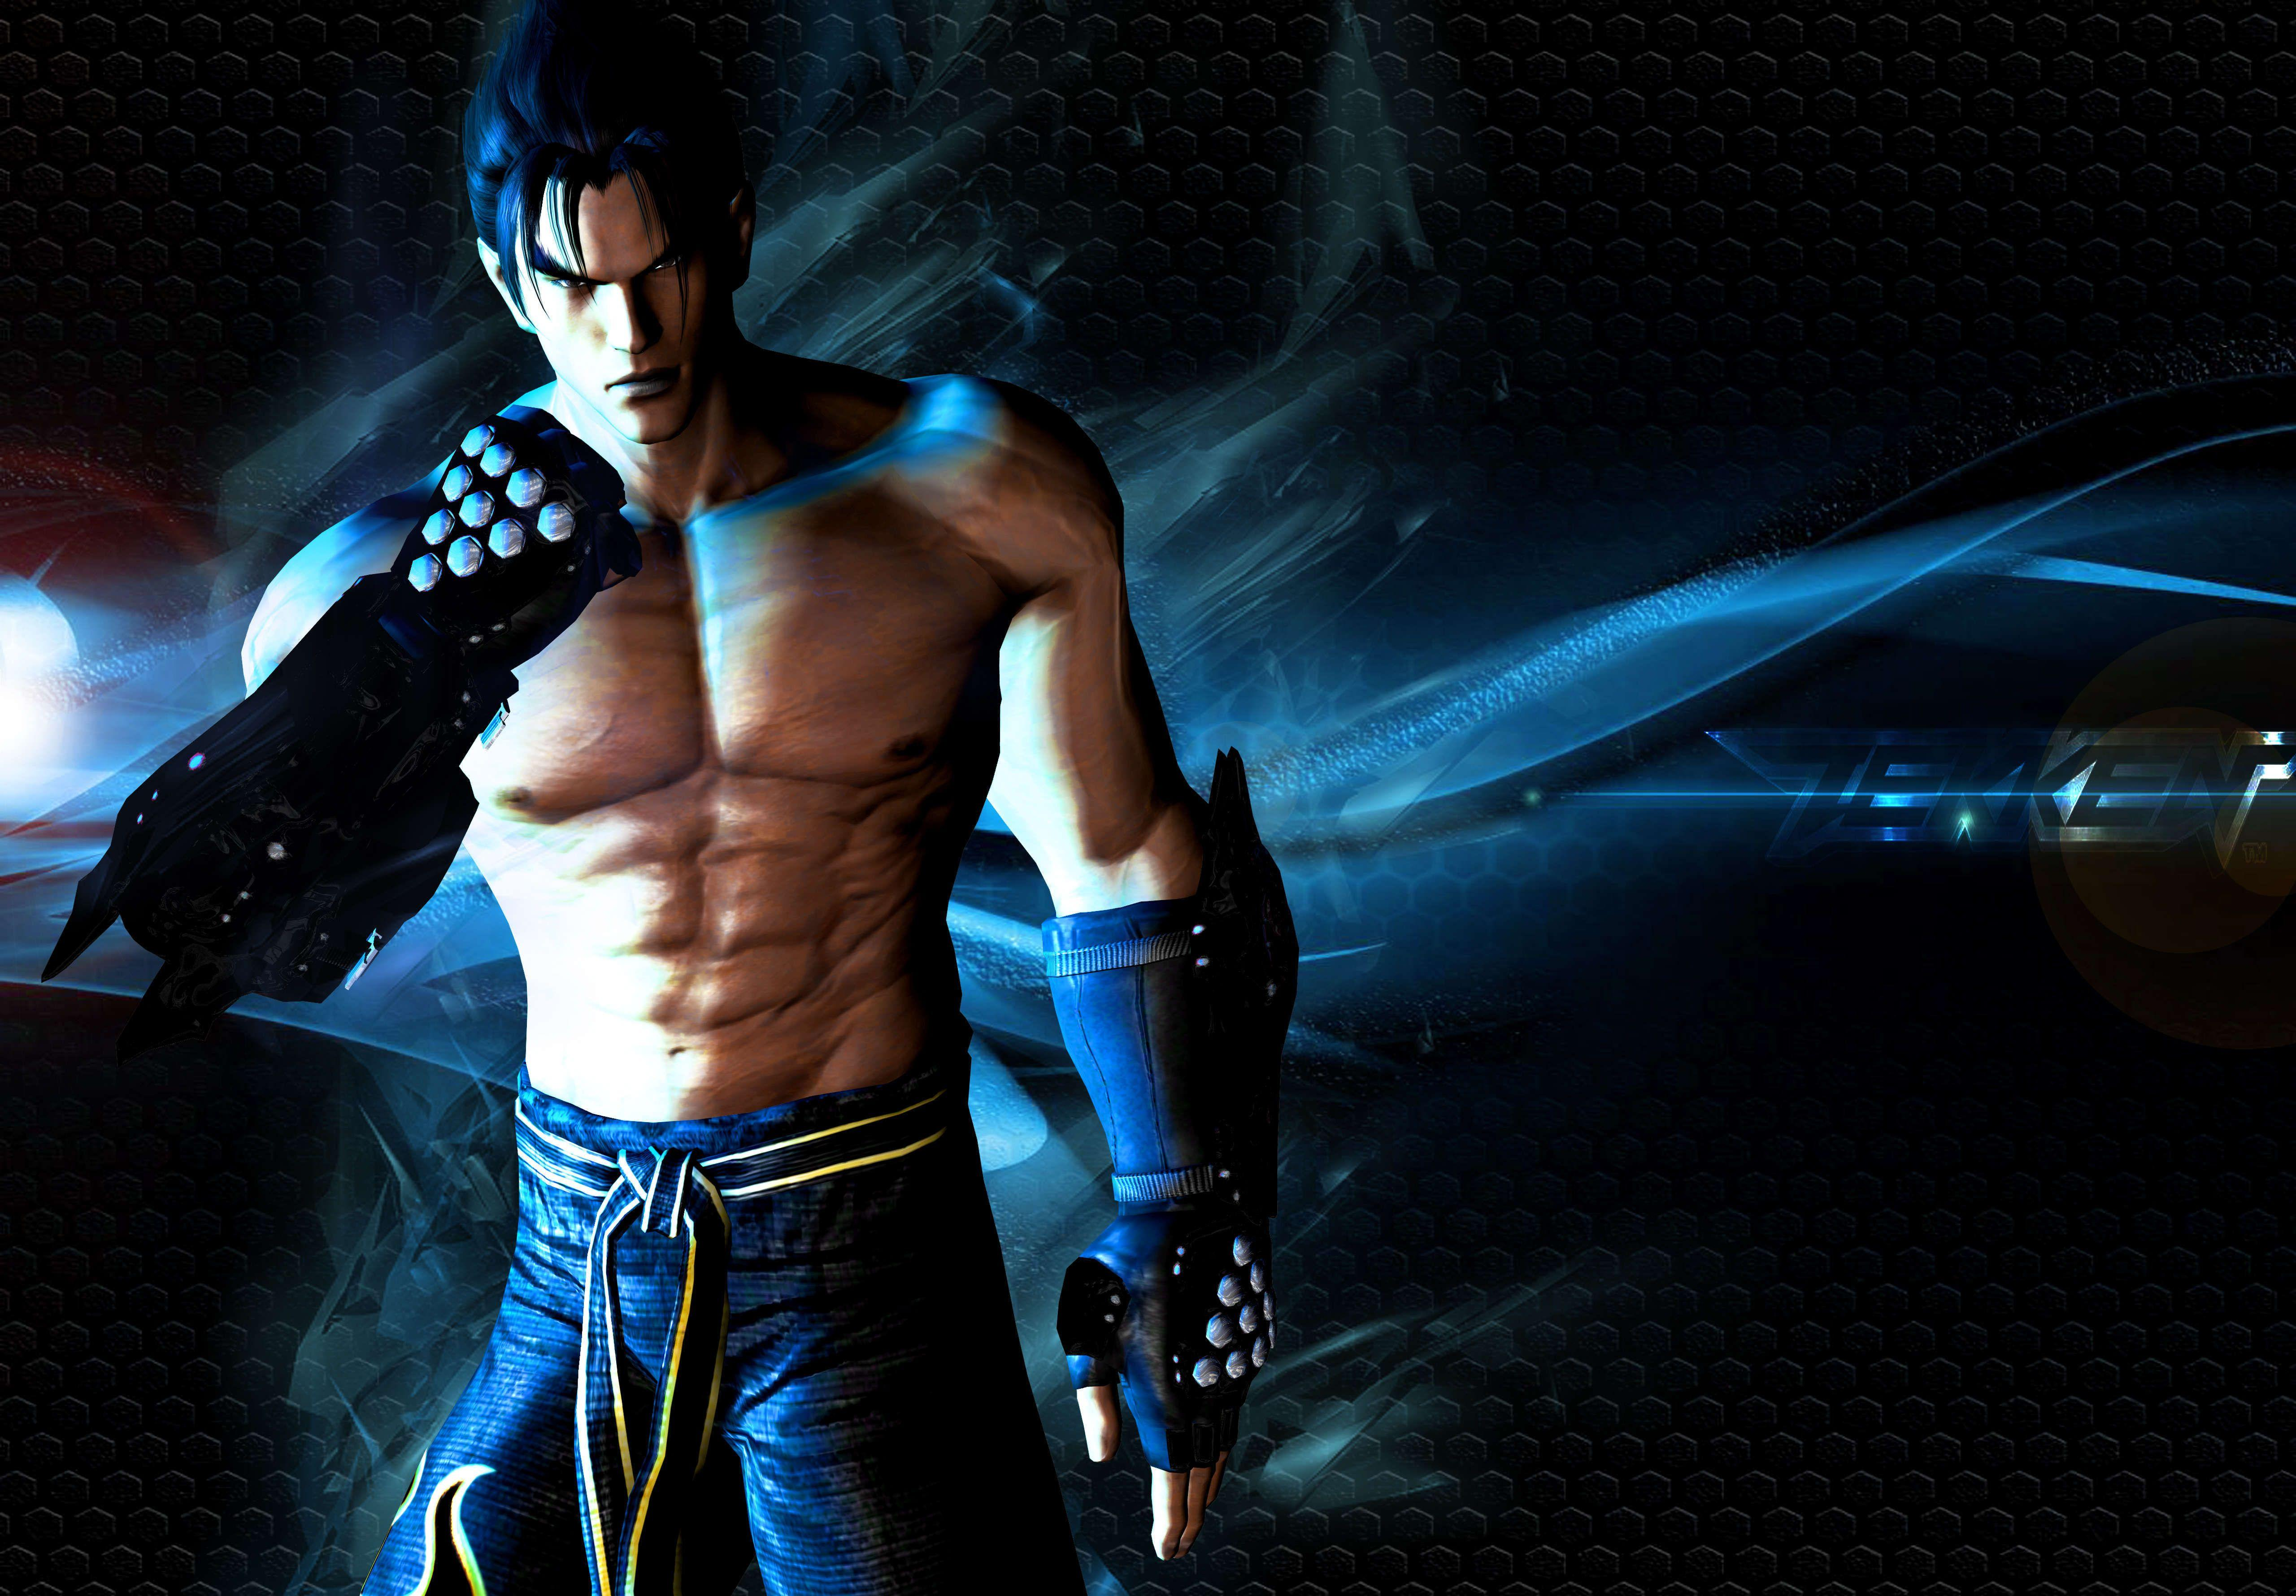 Jin Tekken Wallpapers Wallpaper Cave